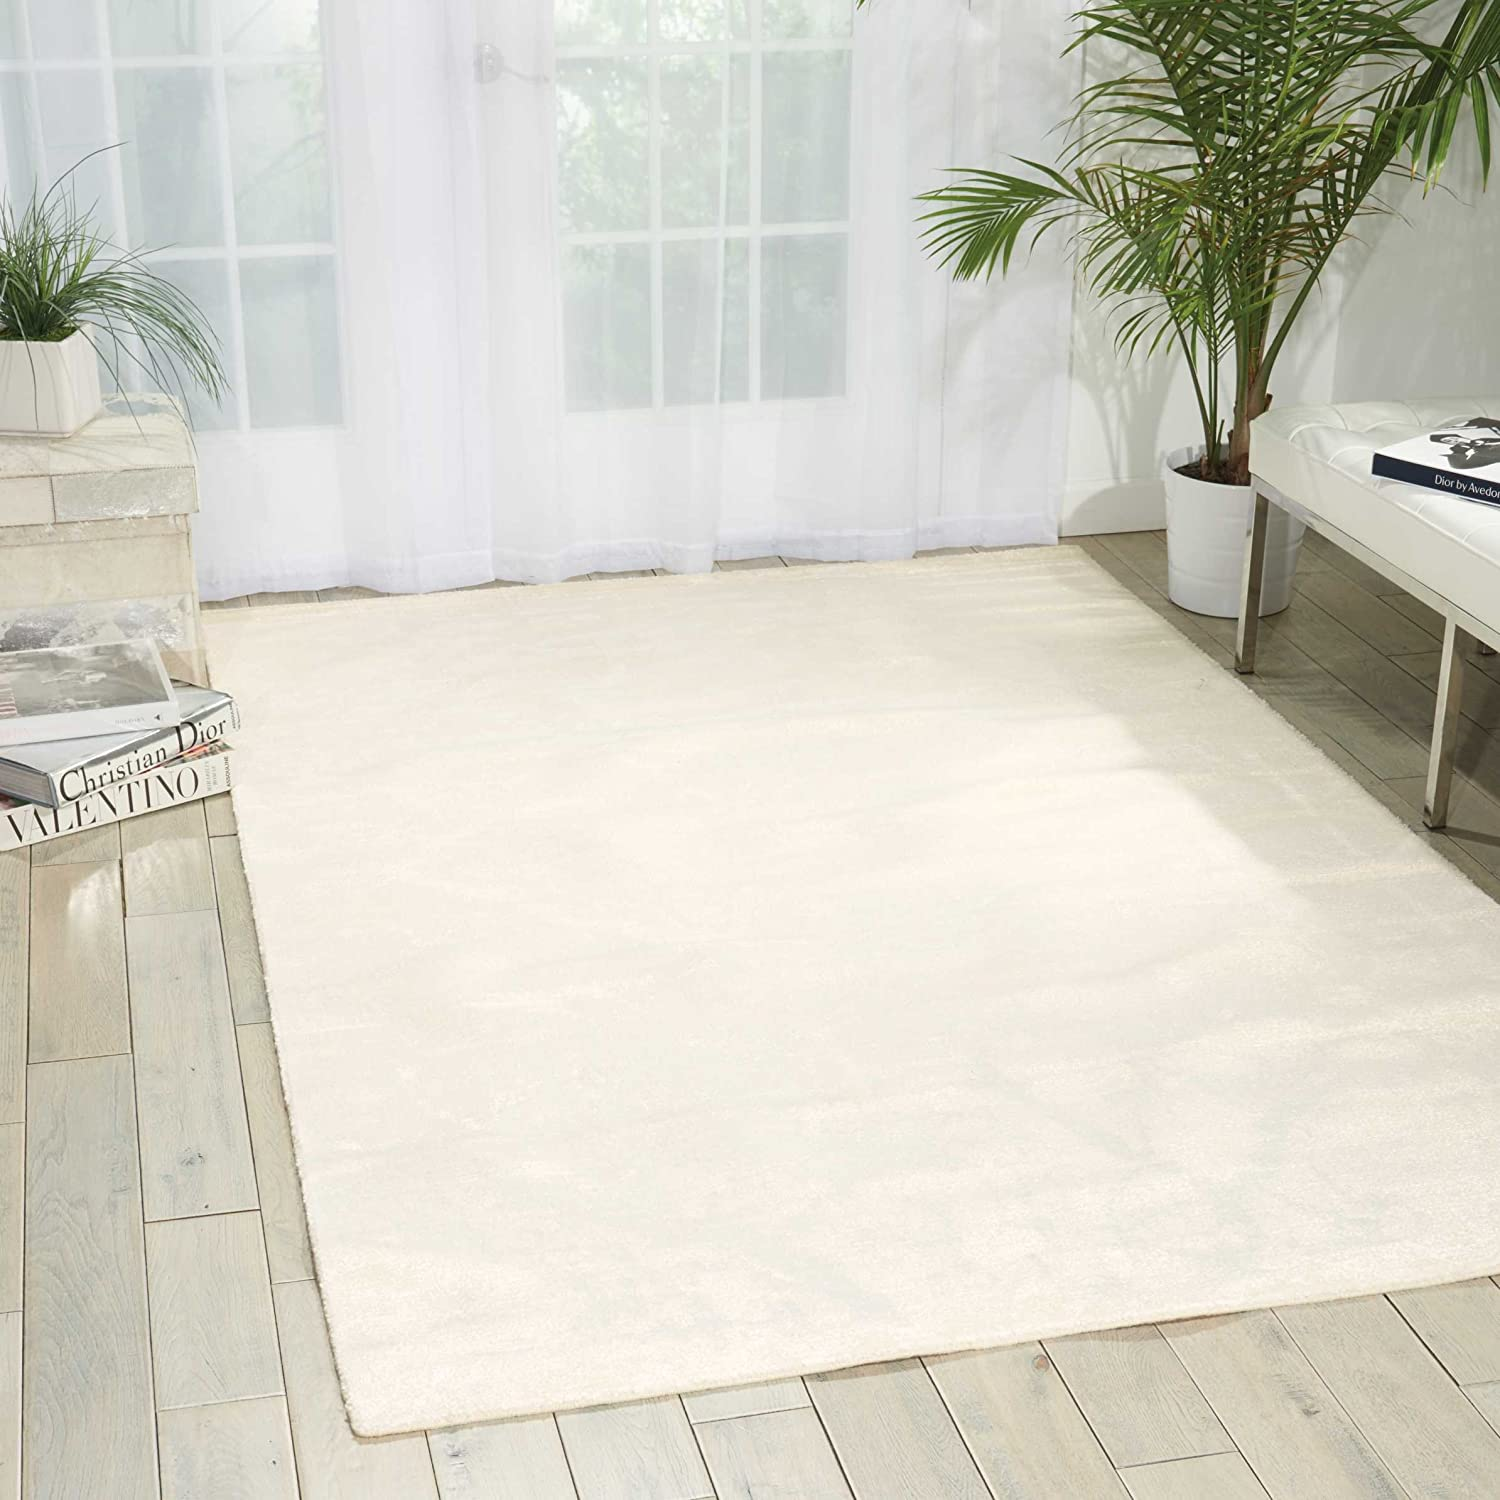 Nourison Twilight Ivory Rectangle Area 6-Inches Special sale Max 51% OFF item 8-Feet by Rug 1